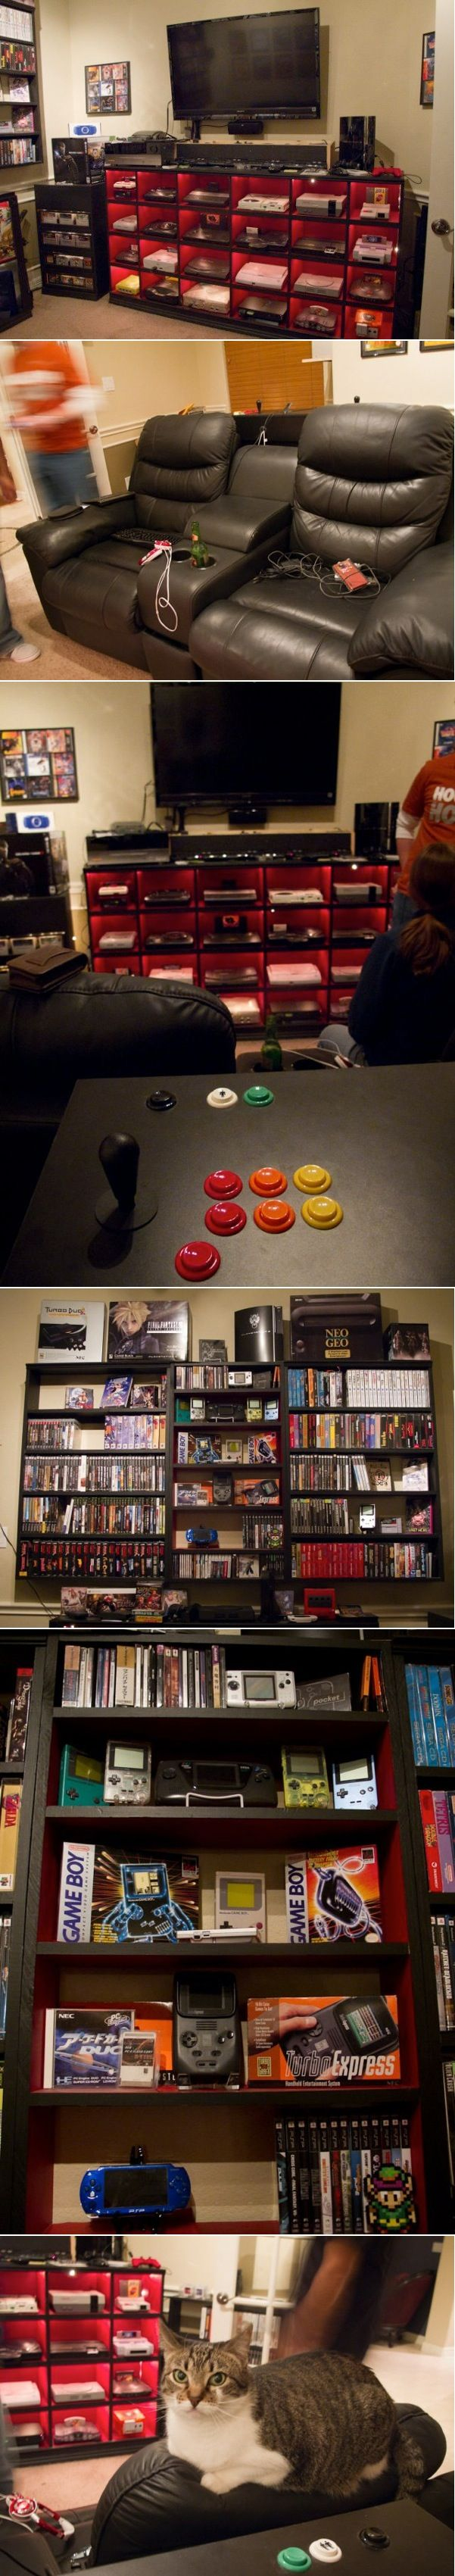 Awesome home video game center. The cat makes it THAT much cooler :)